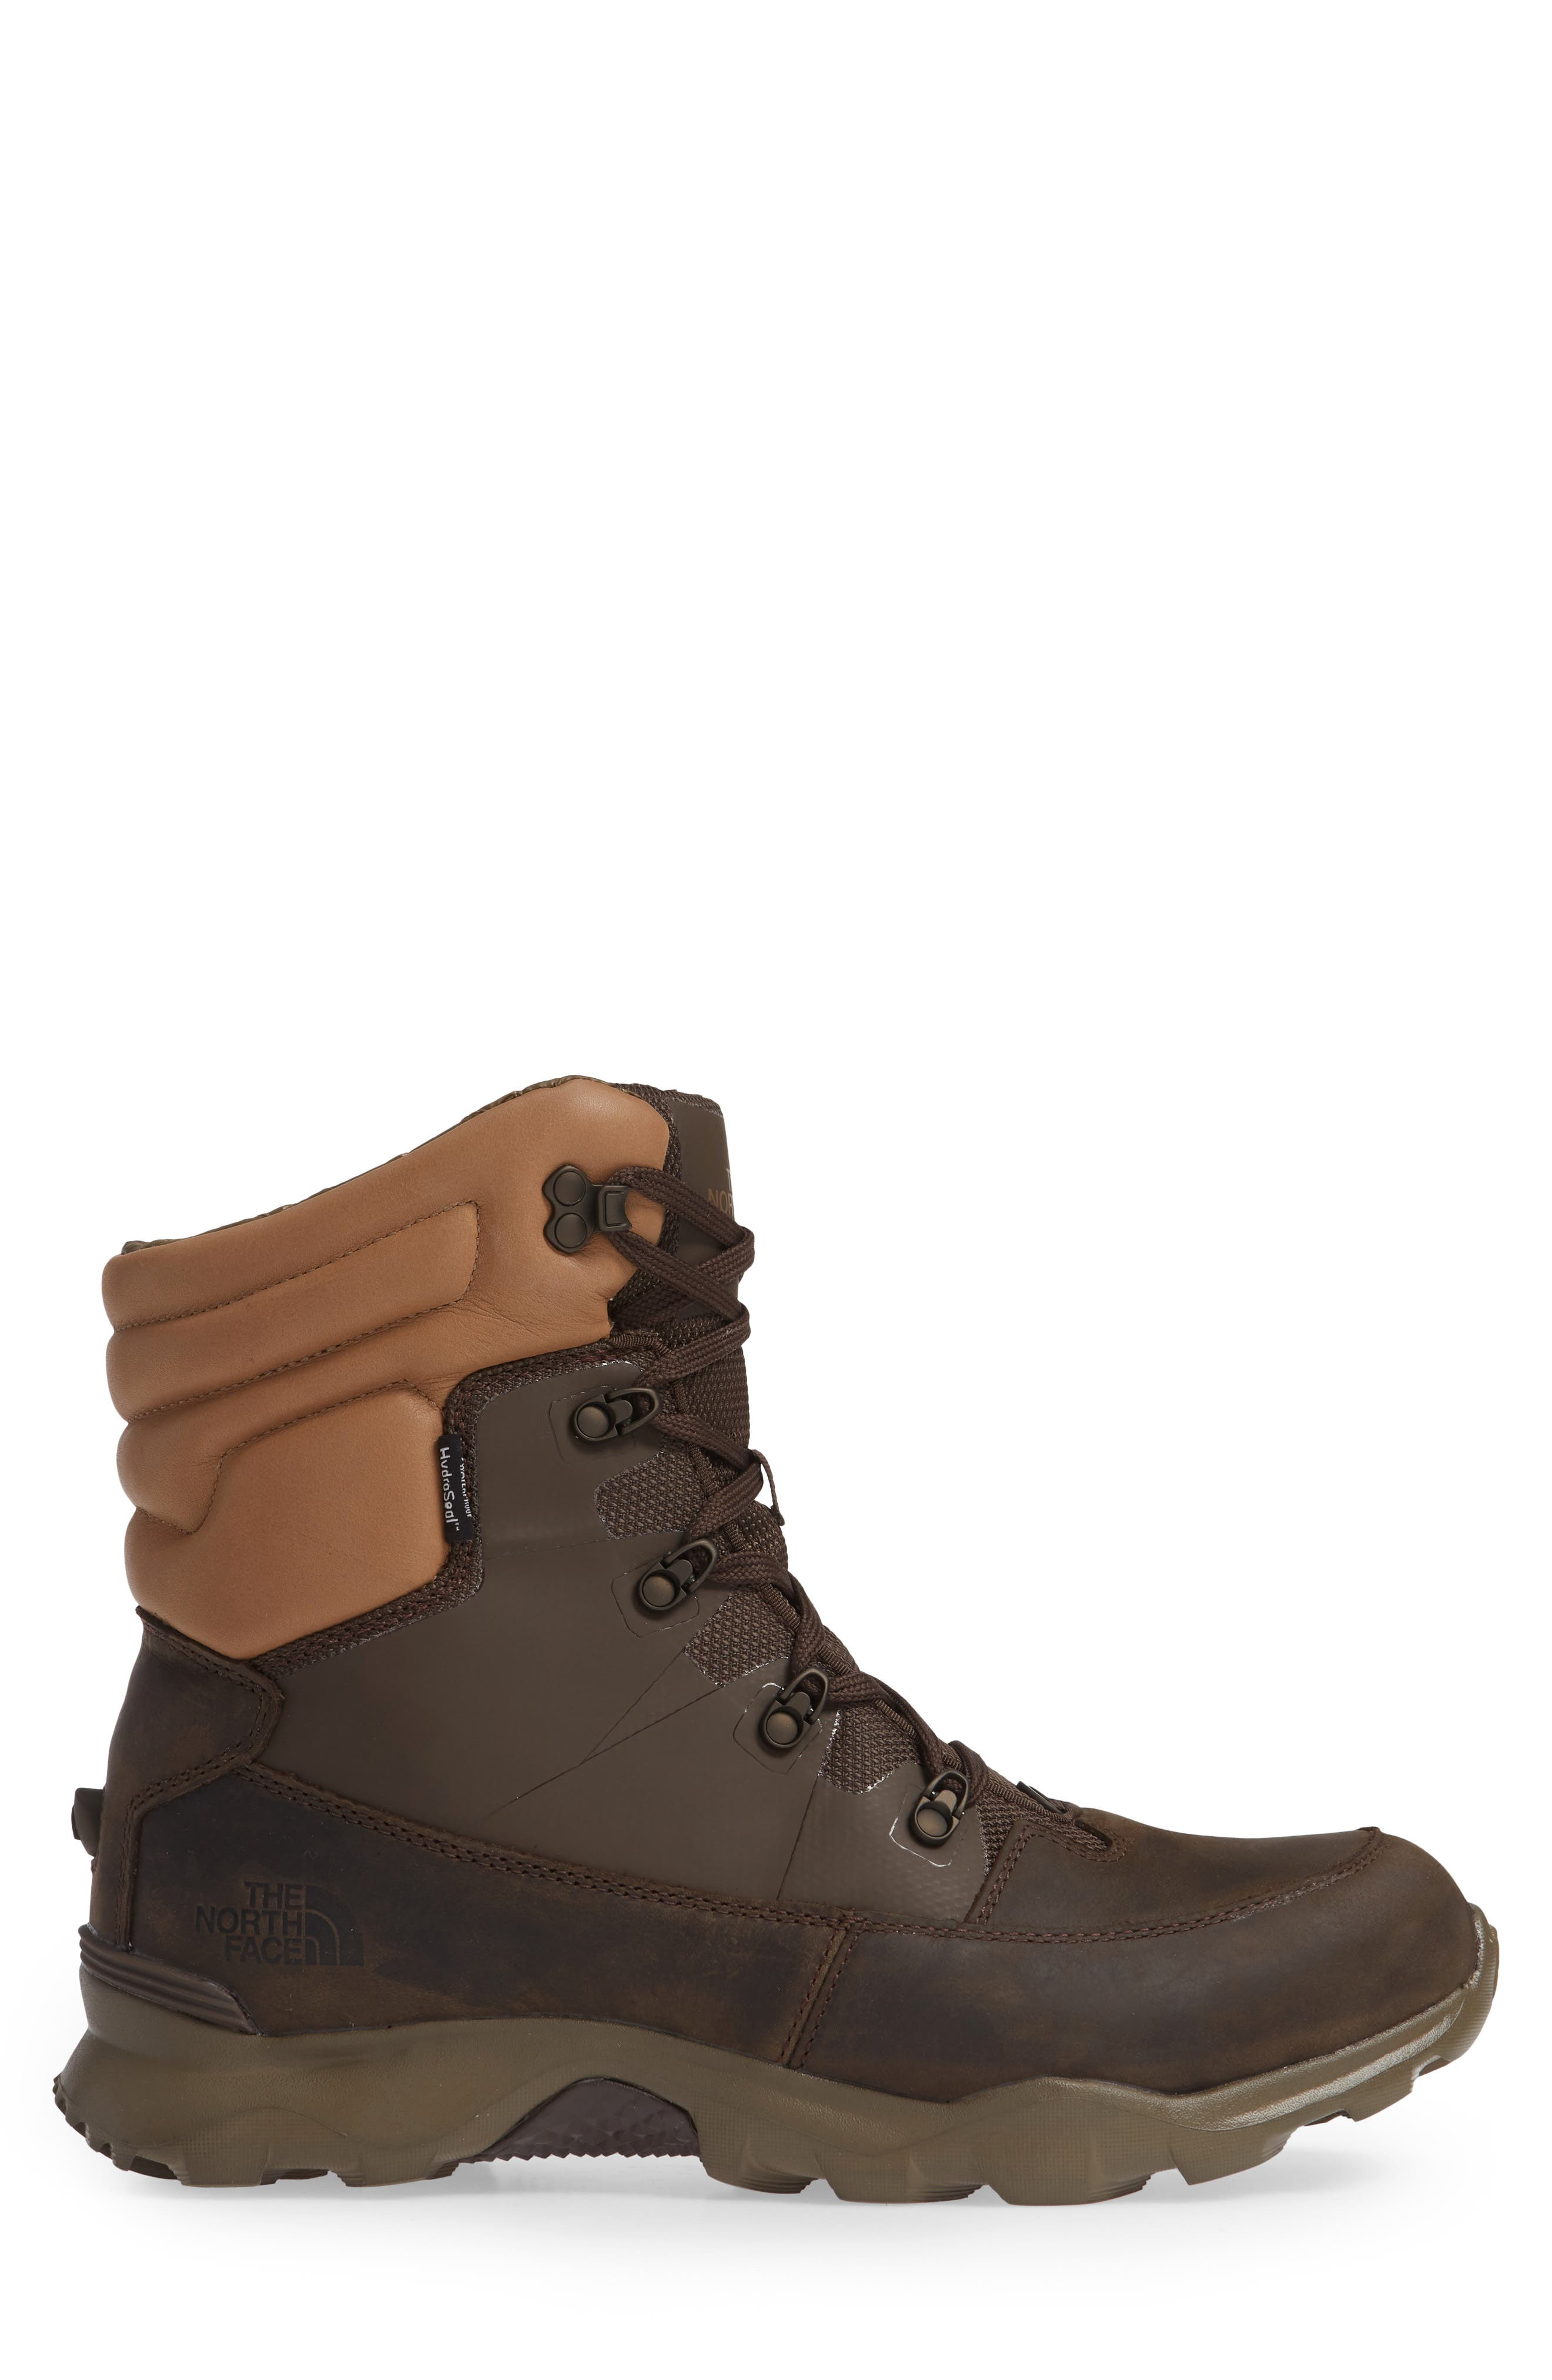 THE NORTH FACE,                             ThermoBall Lifty Snow Waterproof Boot,                             Alternate thumbnail 3, color,                             CHOCOLATE BROWN/ CARGO KHAKI